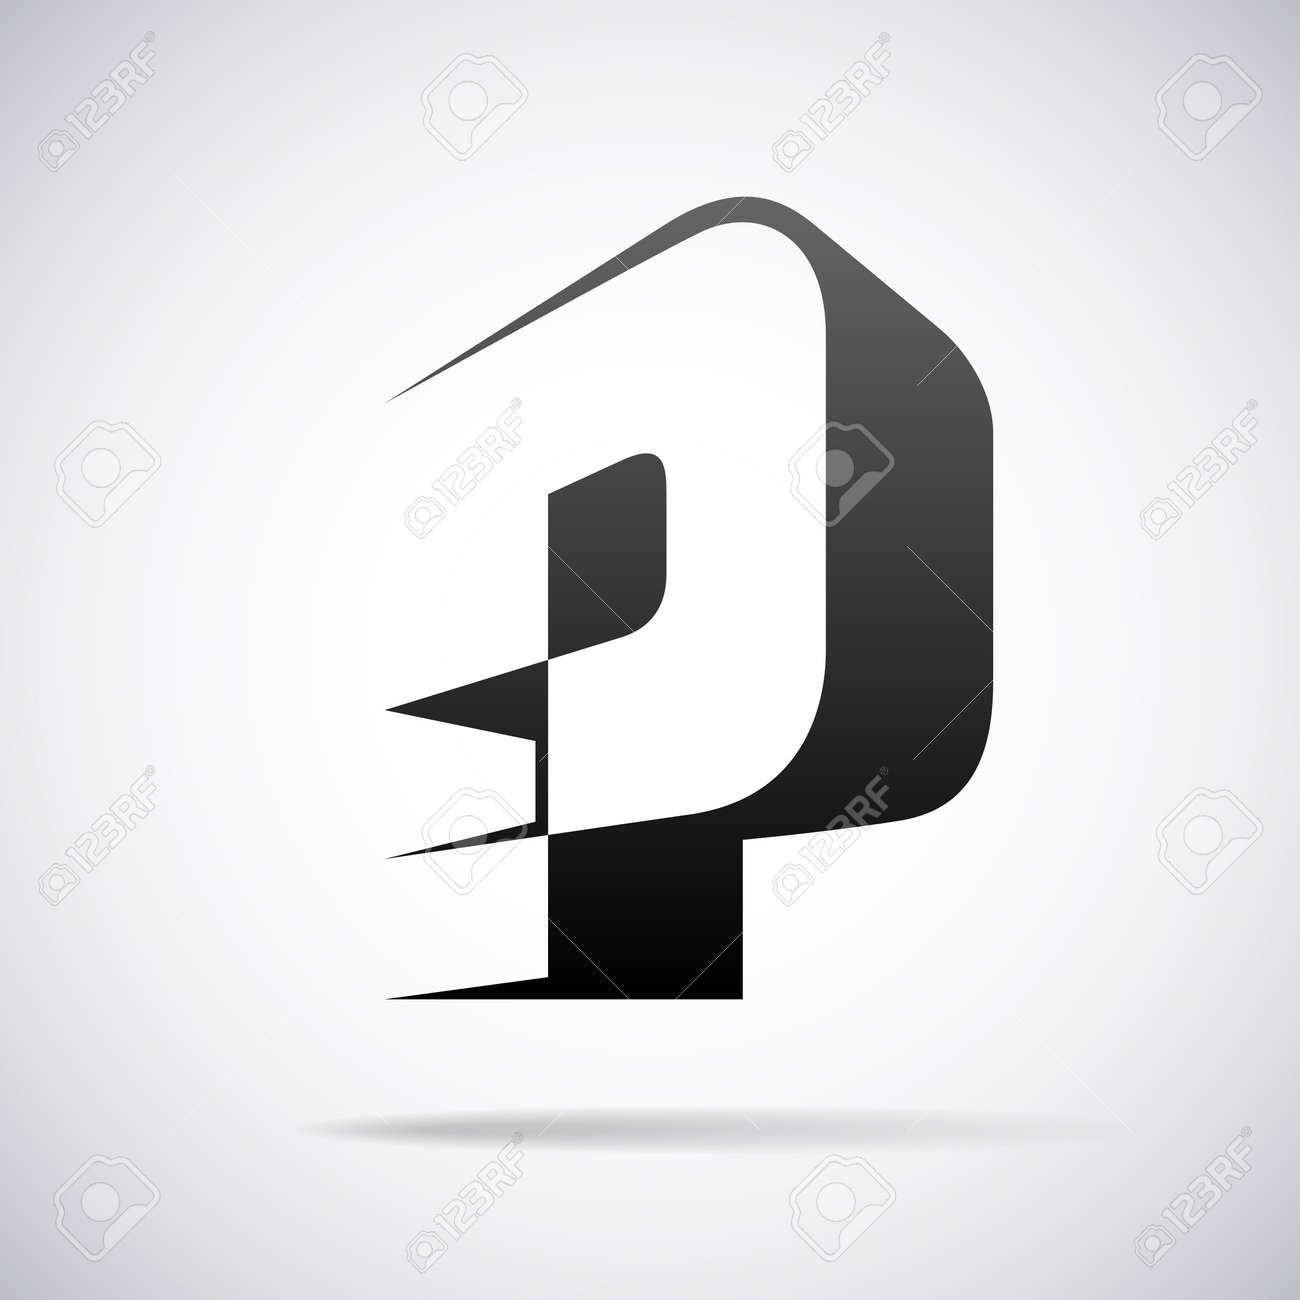 Letter P Design Template Vector Illustration Royalty Free Cliparts